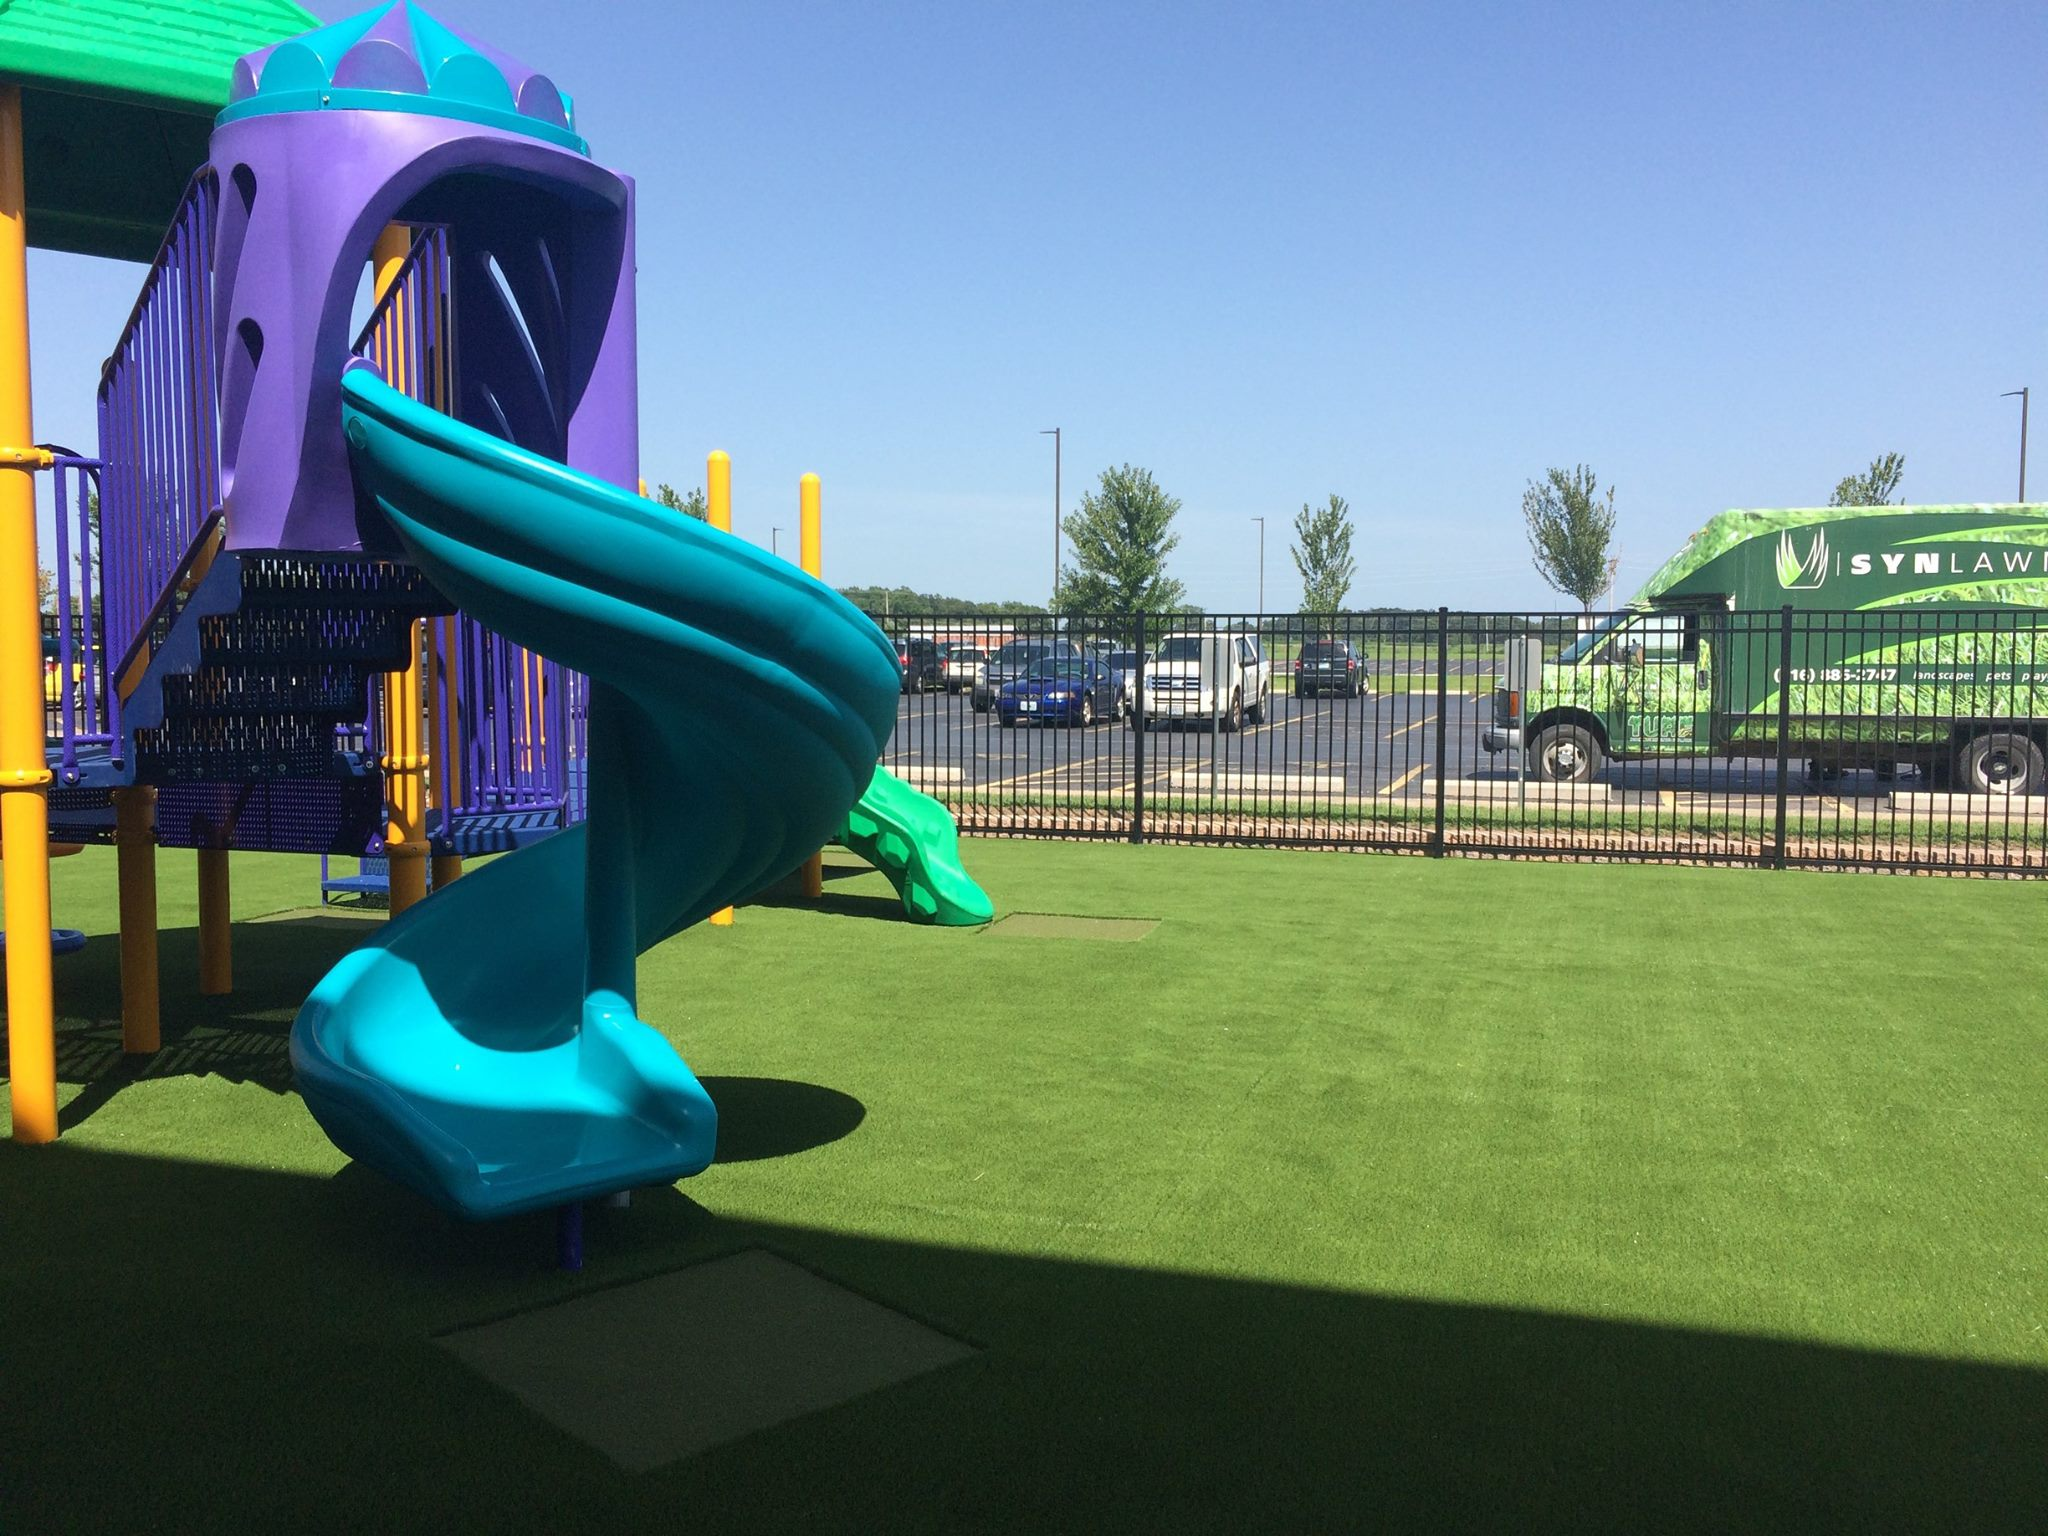 A colorful playground on SYNLawn artificial grass.